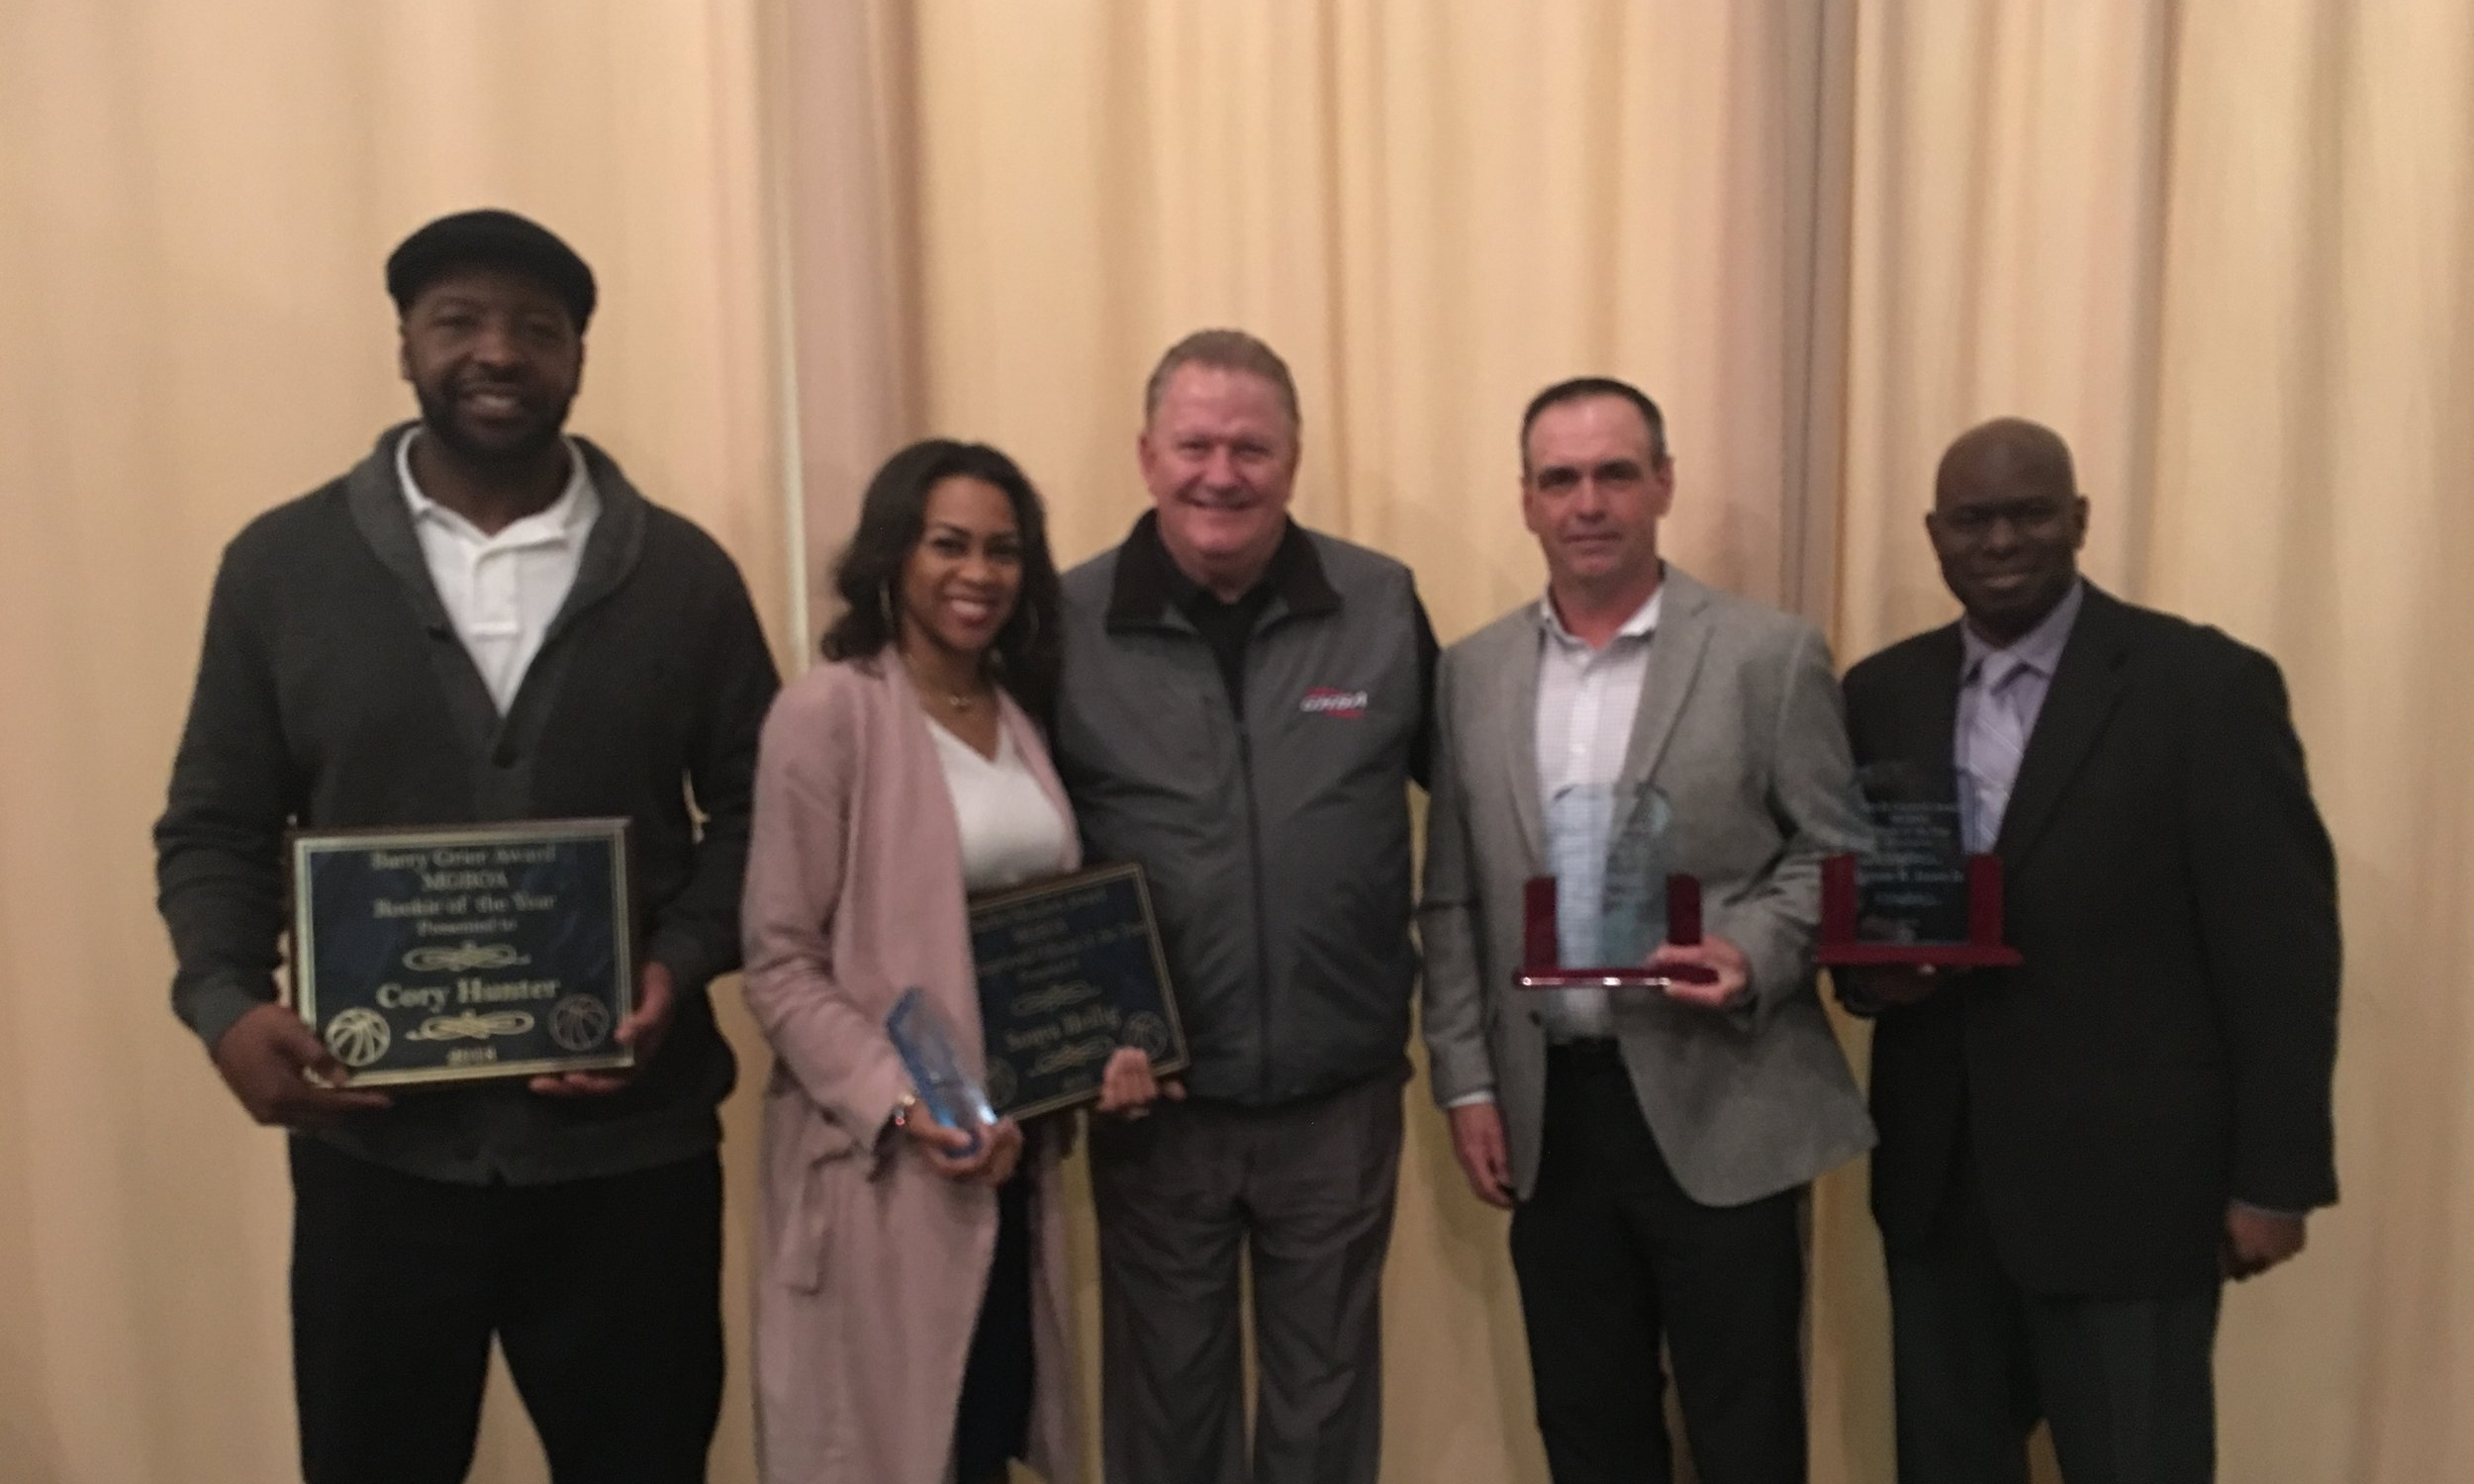 From Left to Right: Corey Hunter (Rookie of the Year), Sonya Heilig (Most Improved), Ernie Yarbroug (GHSA Assistant Executive Director), Ken Clampitt (Official of the Year), Tyrone Jones (Official of the Year)